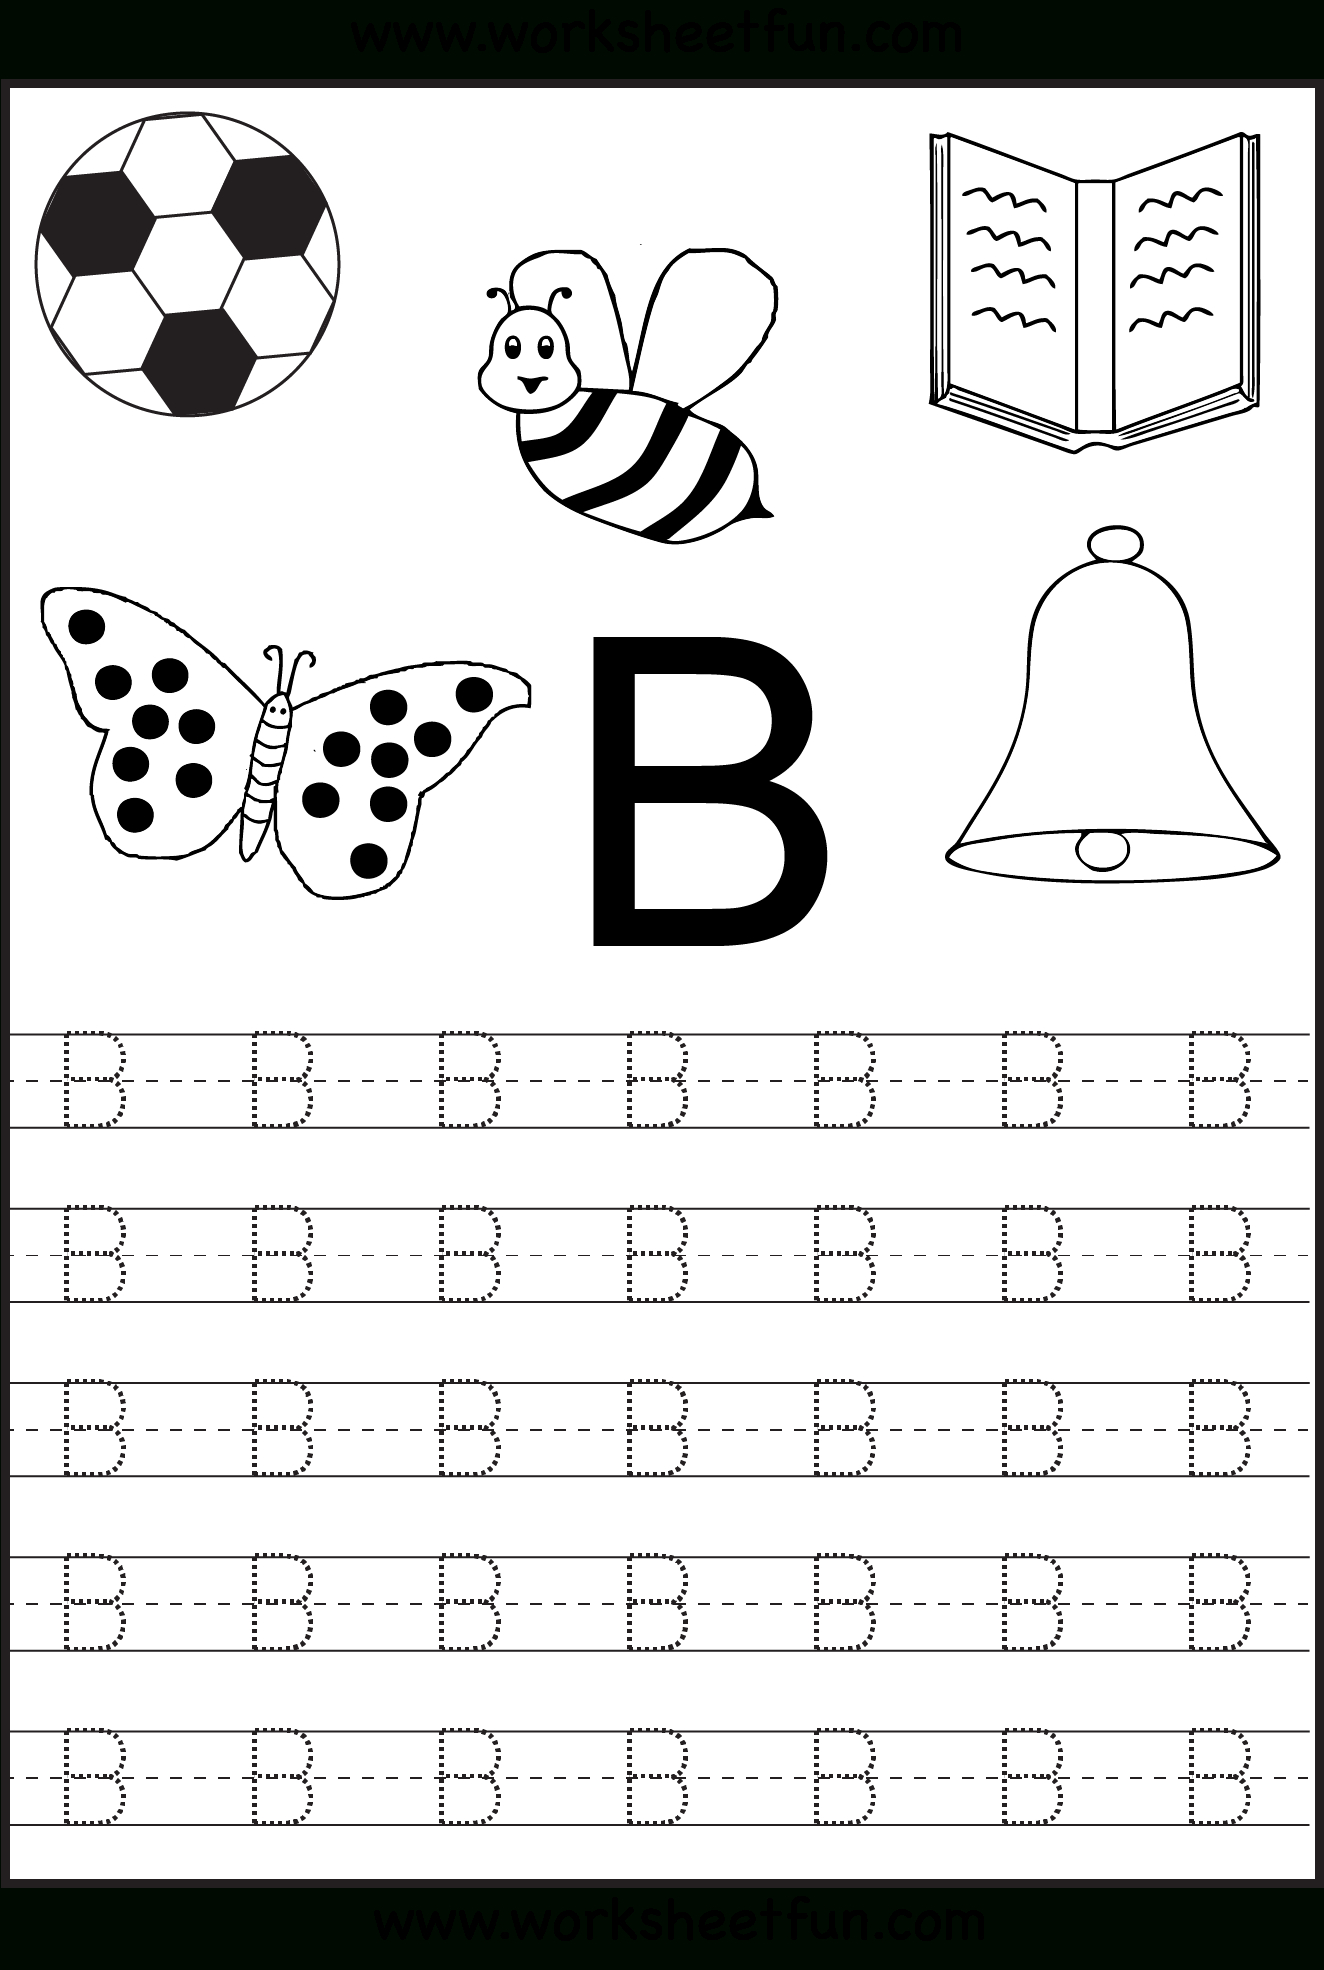 Free Printable Letter Tracing Worksheets For Kindergarten regarding Alphabet I Worksheets For Kindergarten